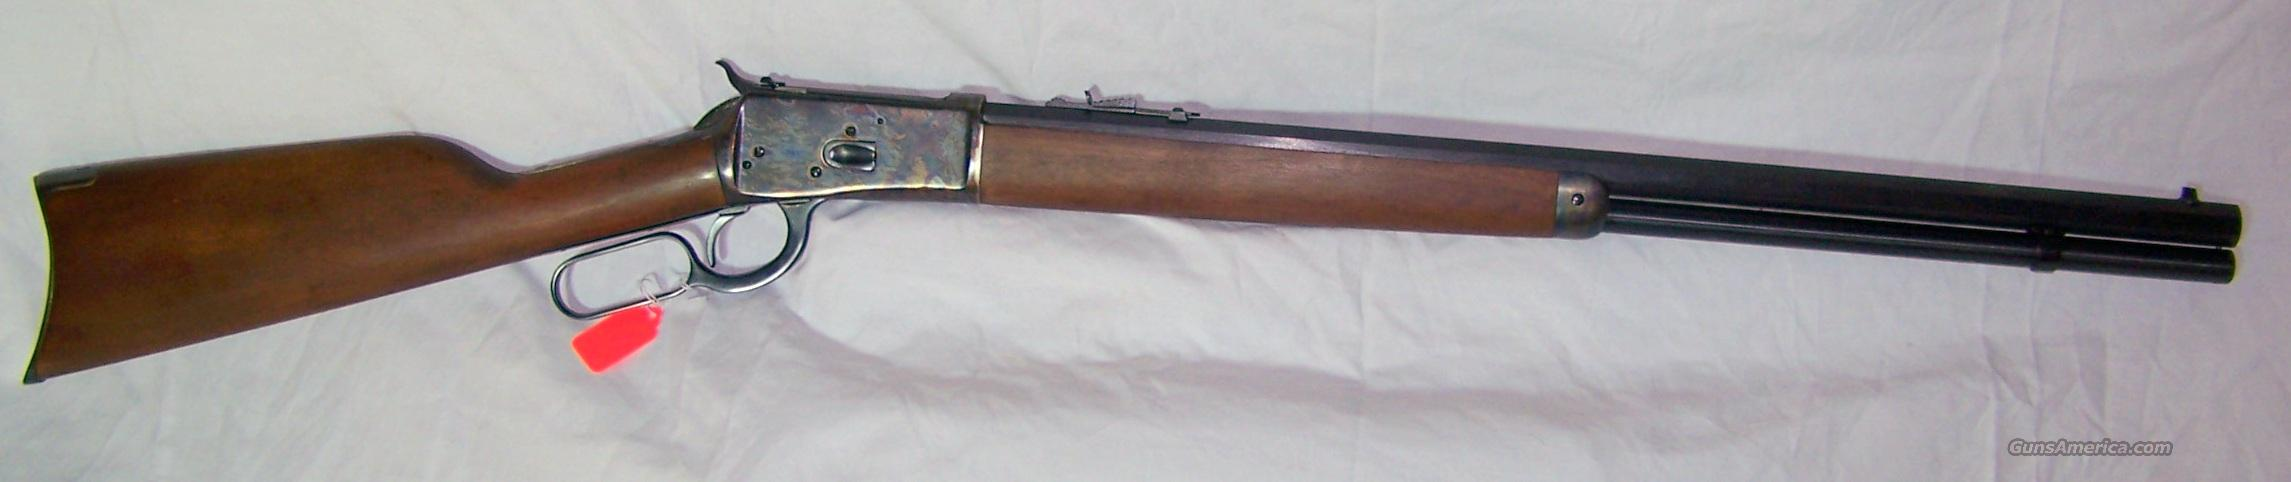 M92 PUMA .45 Colt never fired!  Guns > Rifles > Winchester Replica Rifle Misc.